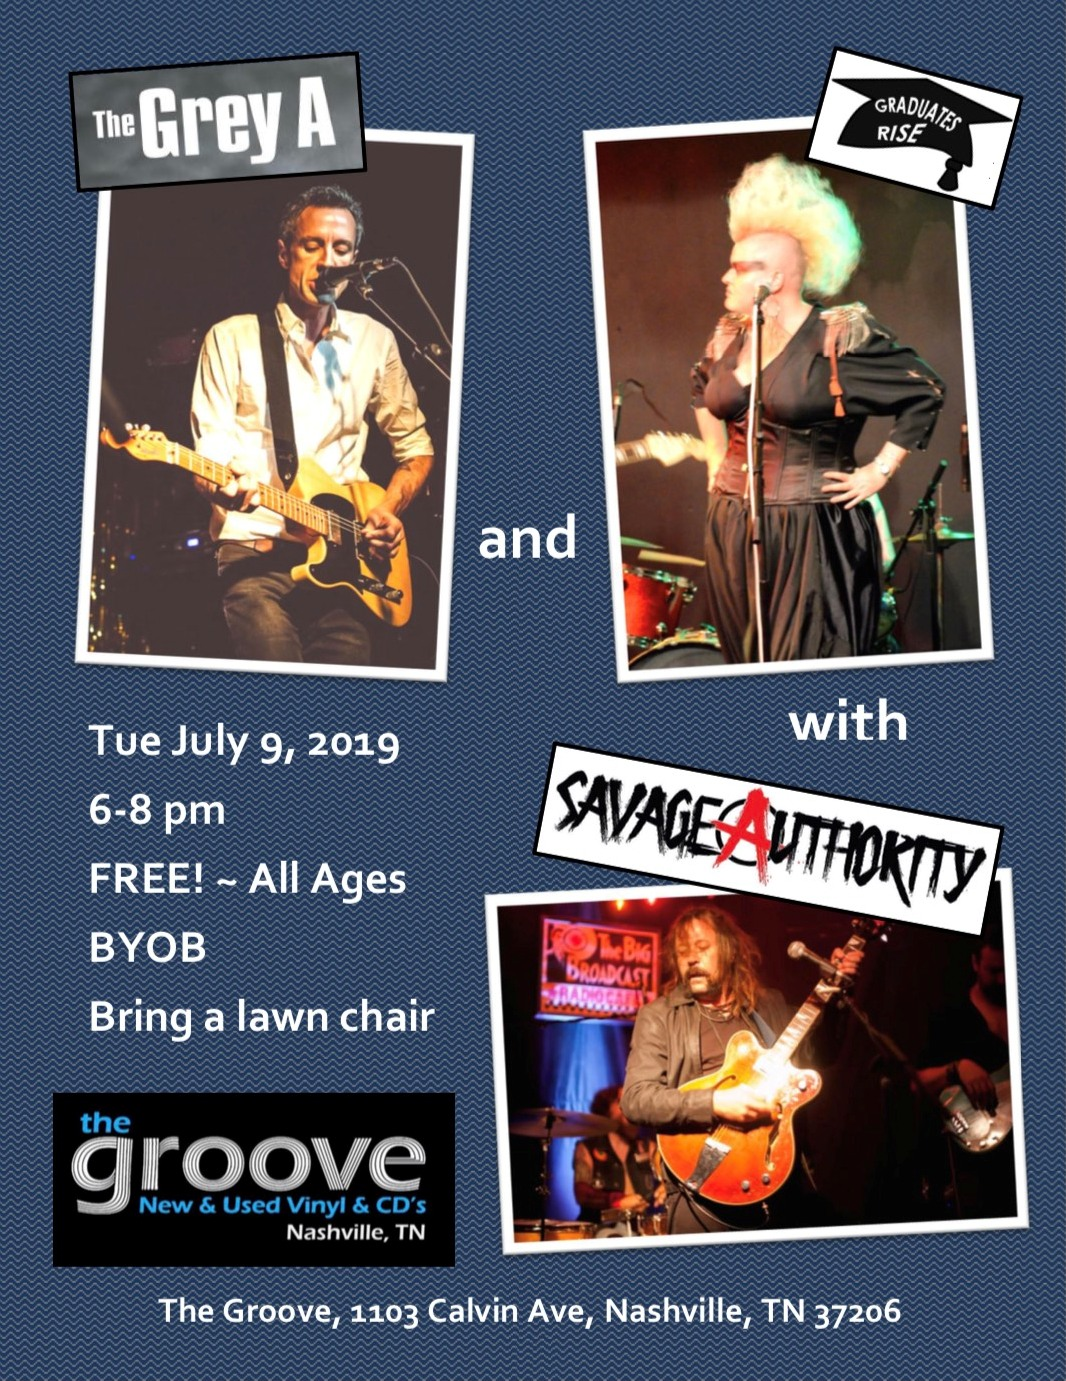 the Grey AGraduates RiseSavage Authority - the Groove Record StoreTuesday, July 9th1103 Calvin Avenue, Nashville, TN 37206All ages - FREE SHOW6pm - 8pm SHARP